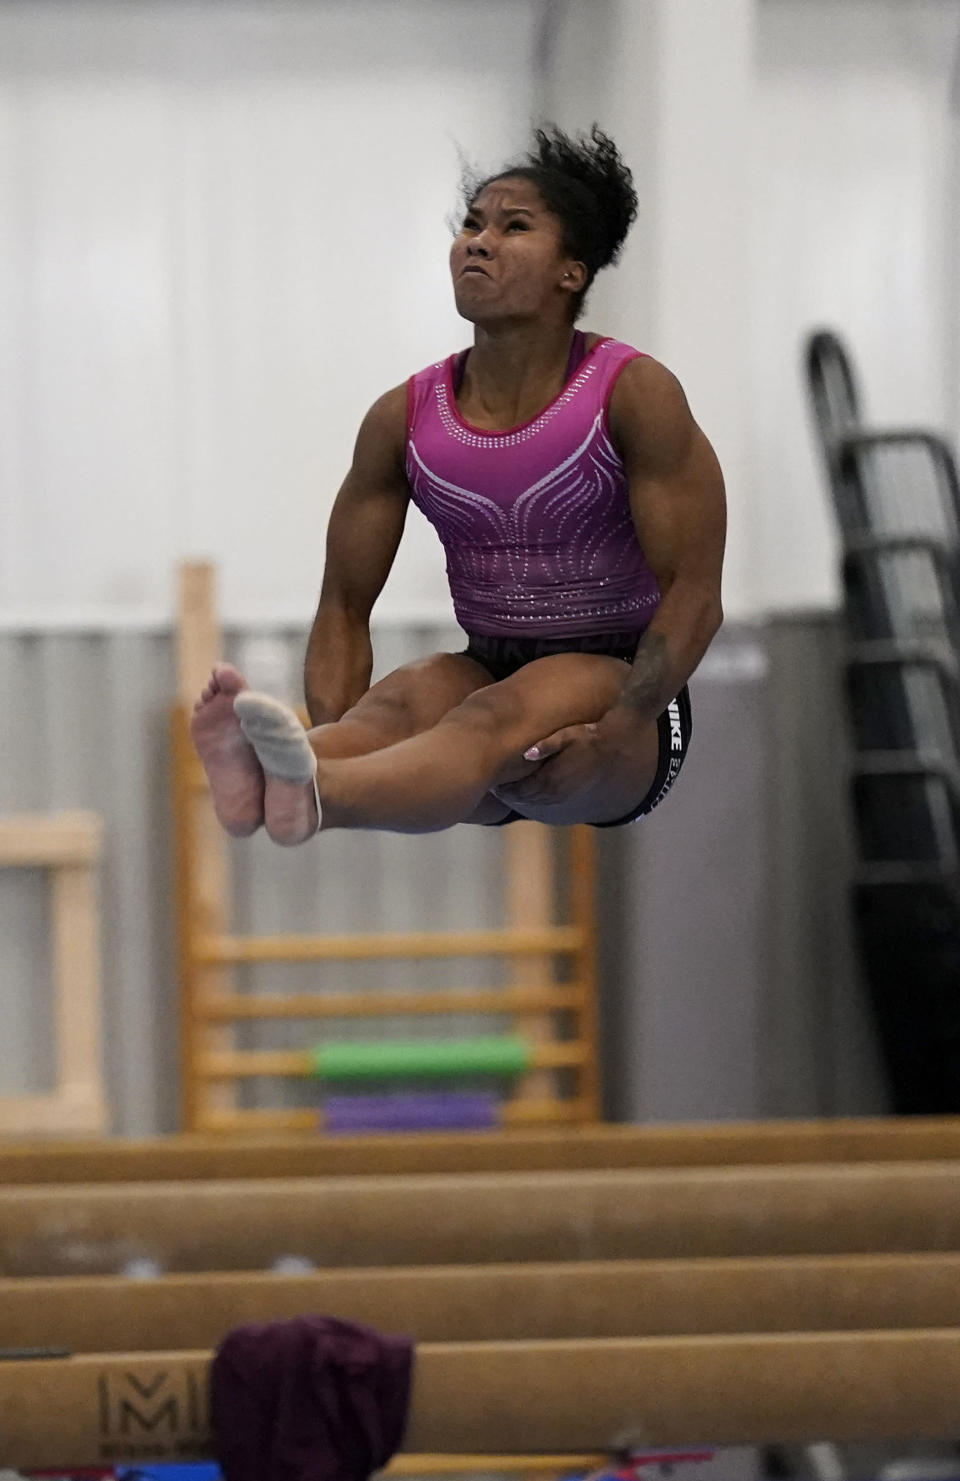 FIULE - In this May 11, 2021, file photo, gymnast Jordan Chiles practices her floor routine in Spring, Texas. Three years ago, Jordan Chiles wasn't sure she wanted to be a gymnast anymore. A move to Texas, a dash of maturity and a renewed confidence in herself have the 20-year-old on the cusp of earning a spot on the U.S. Olympic team. (AP Photo/David J. Phillip, File)